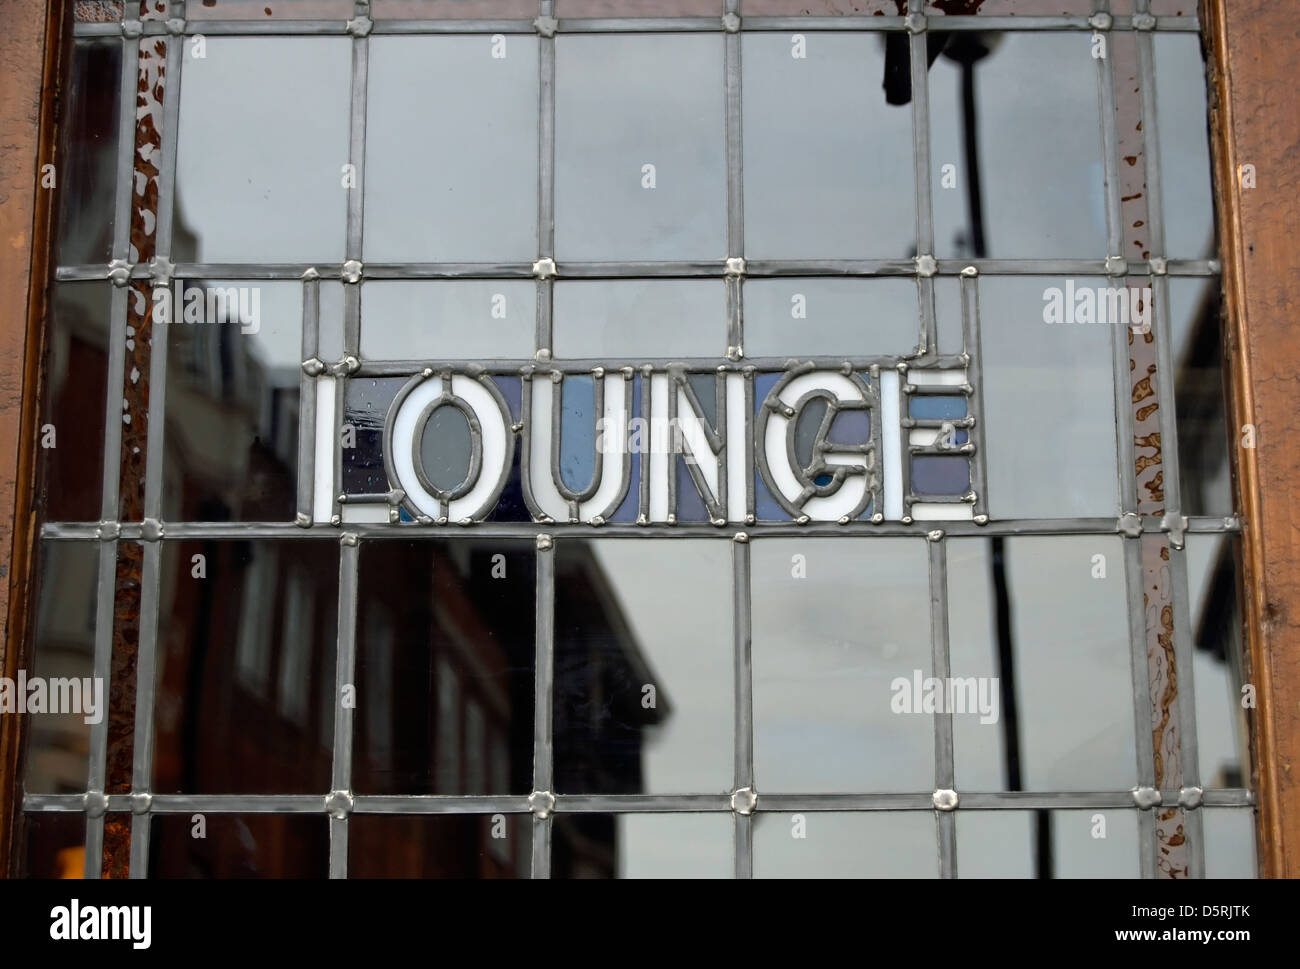 the word lounge set into a leaded light window on a door leading to the lounge bar of a pub, richmond , surrey, - Stock Image